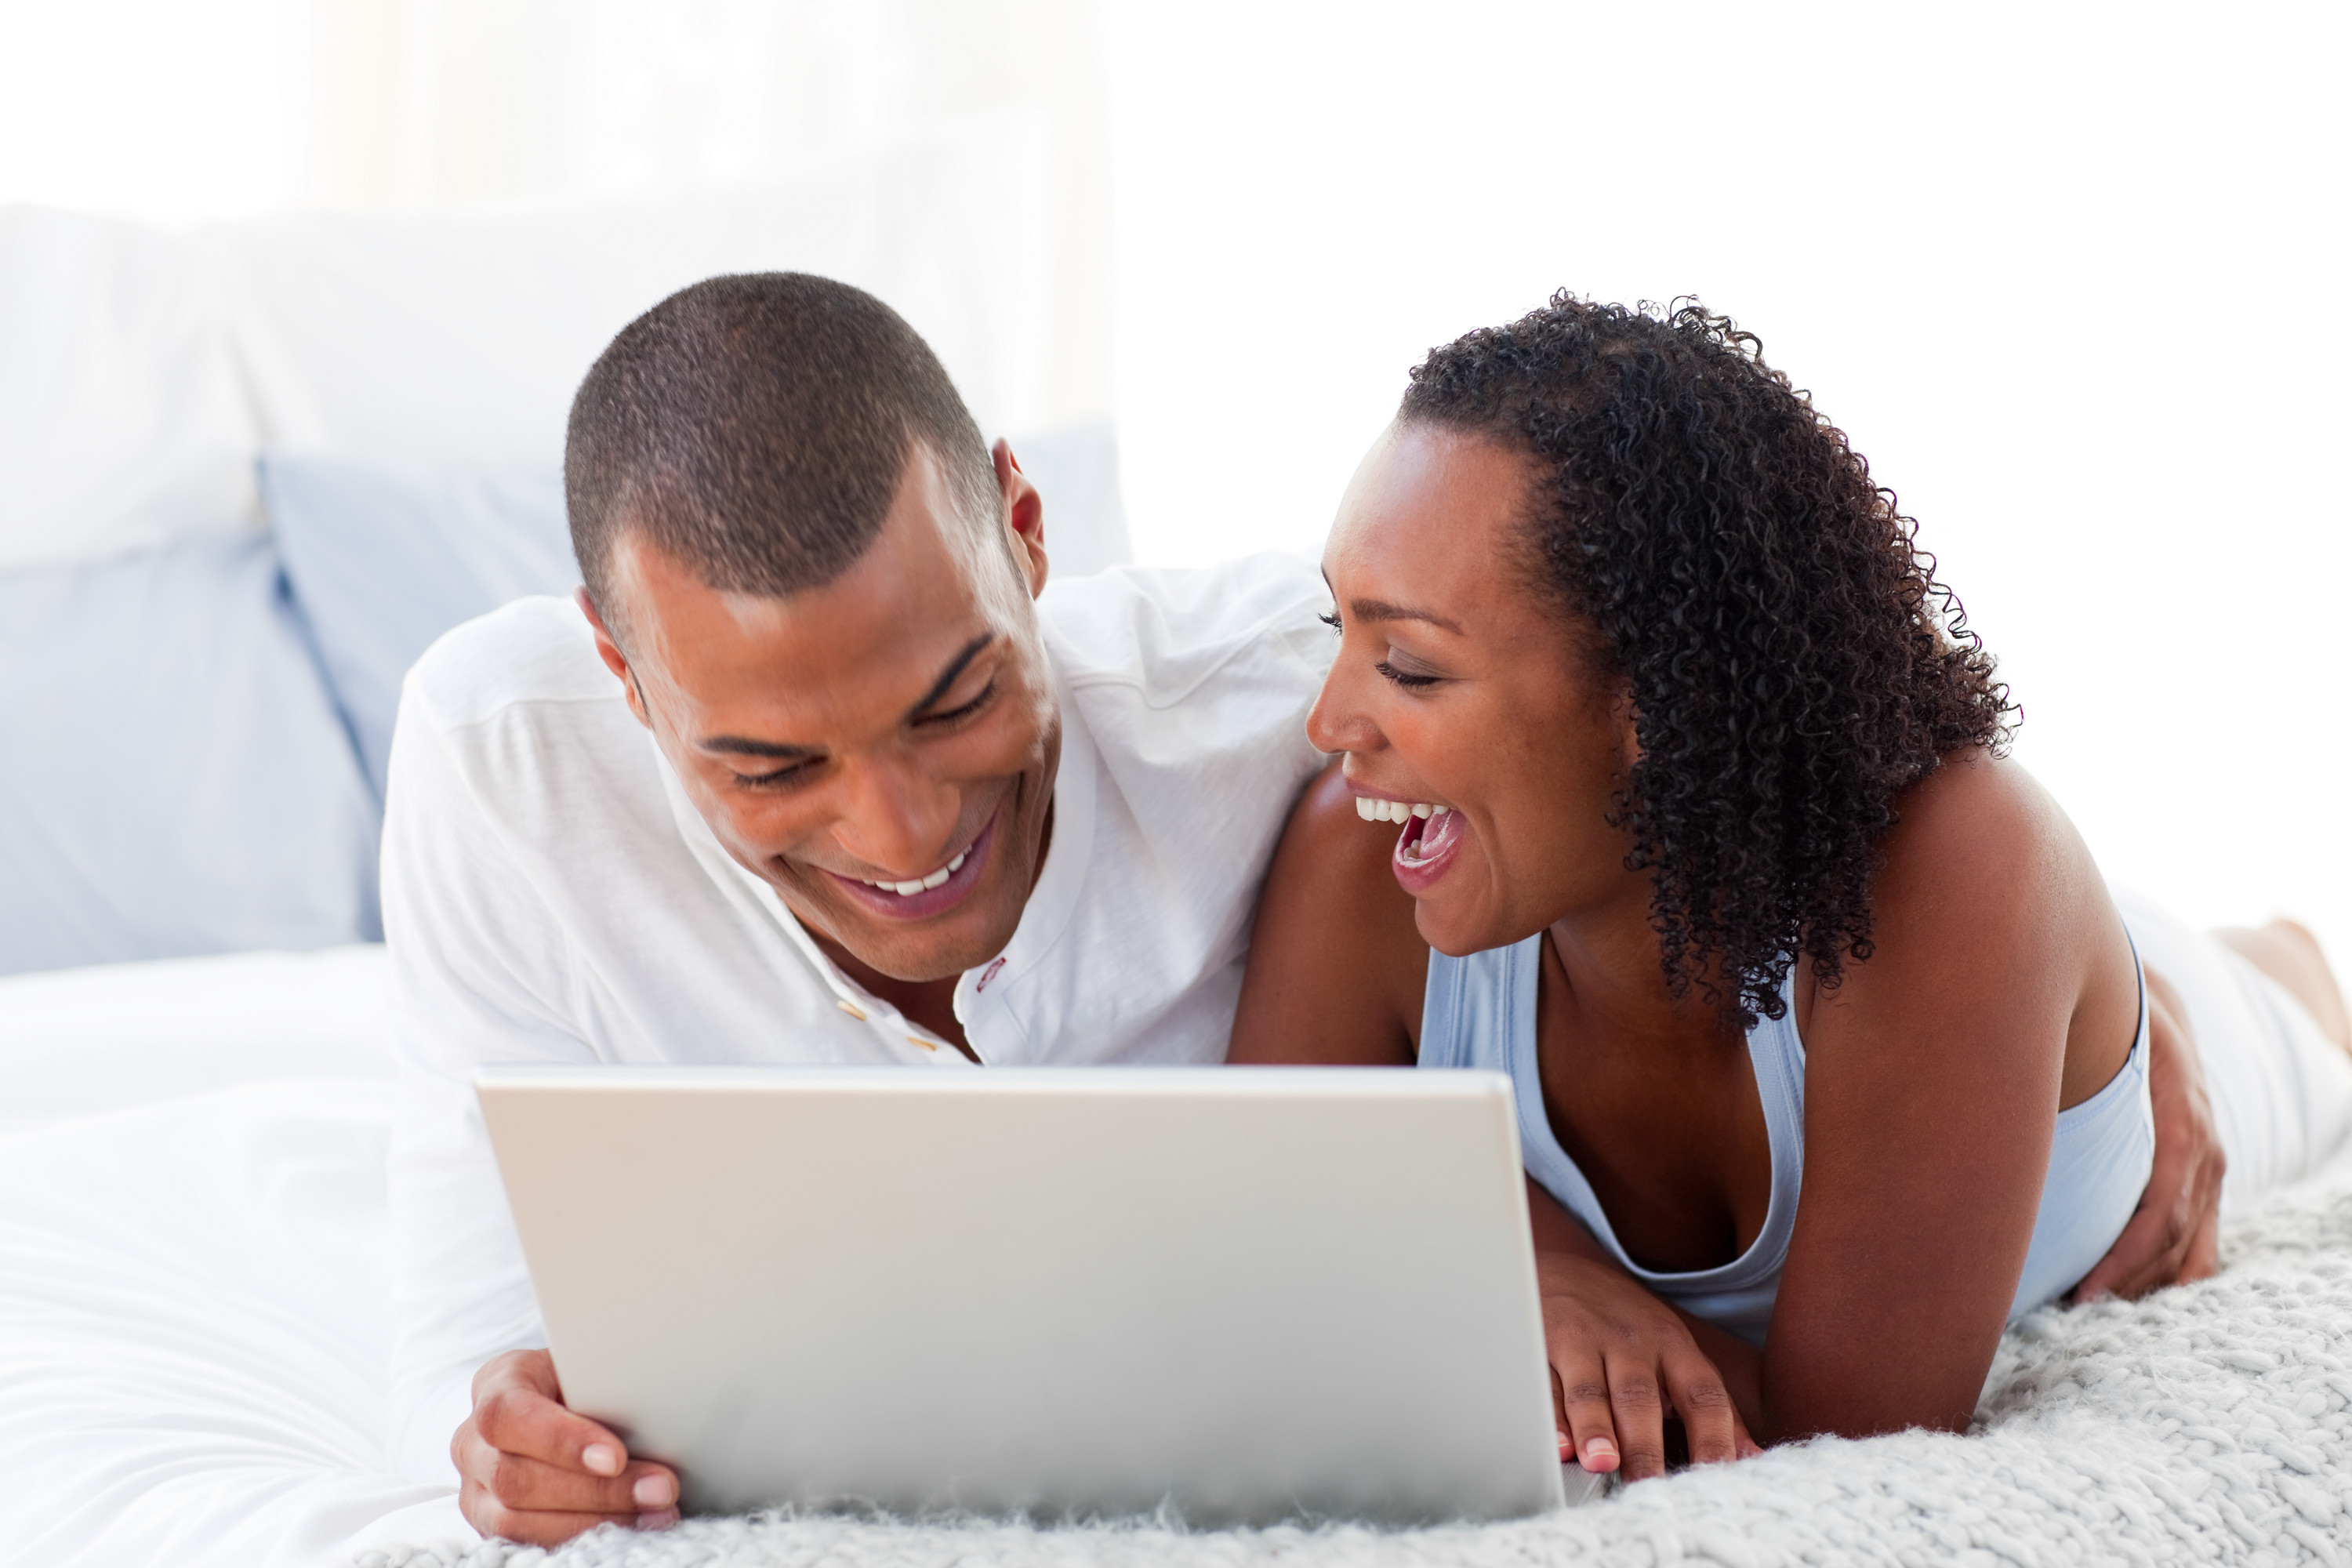 Onipa Black Couples Relationship and Marriage Counseling for African American couples